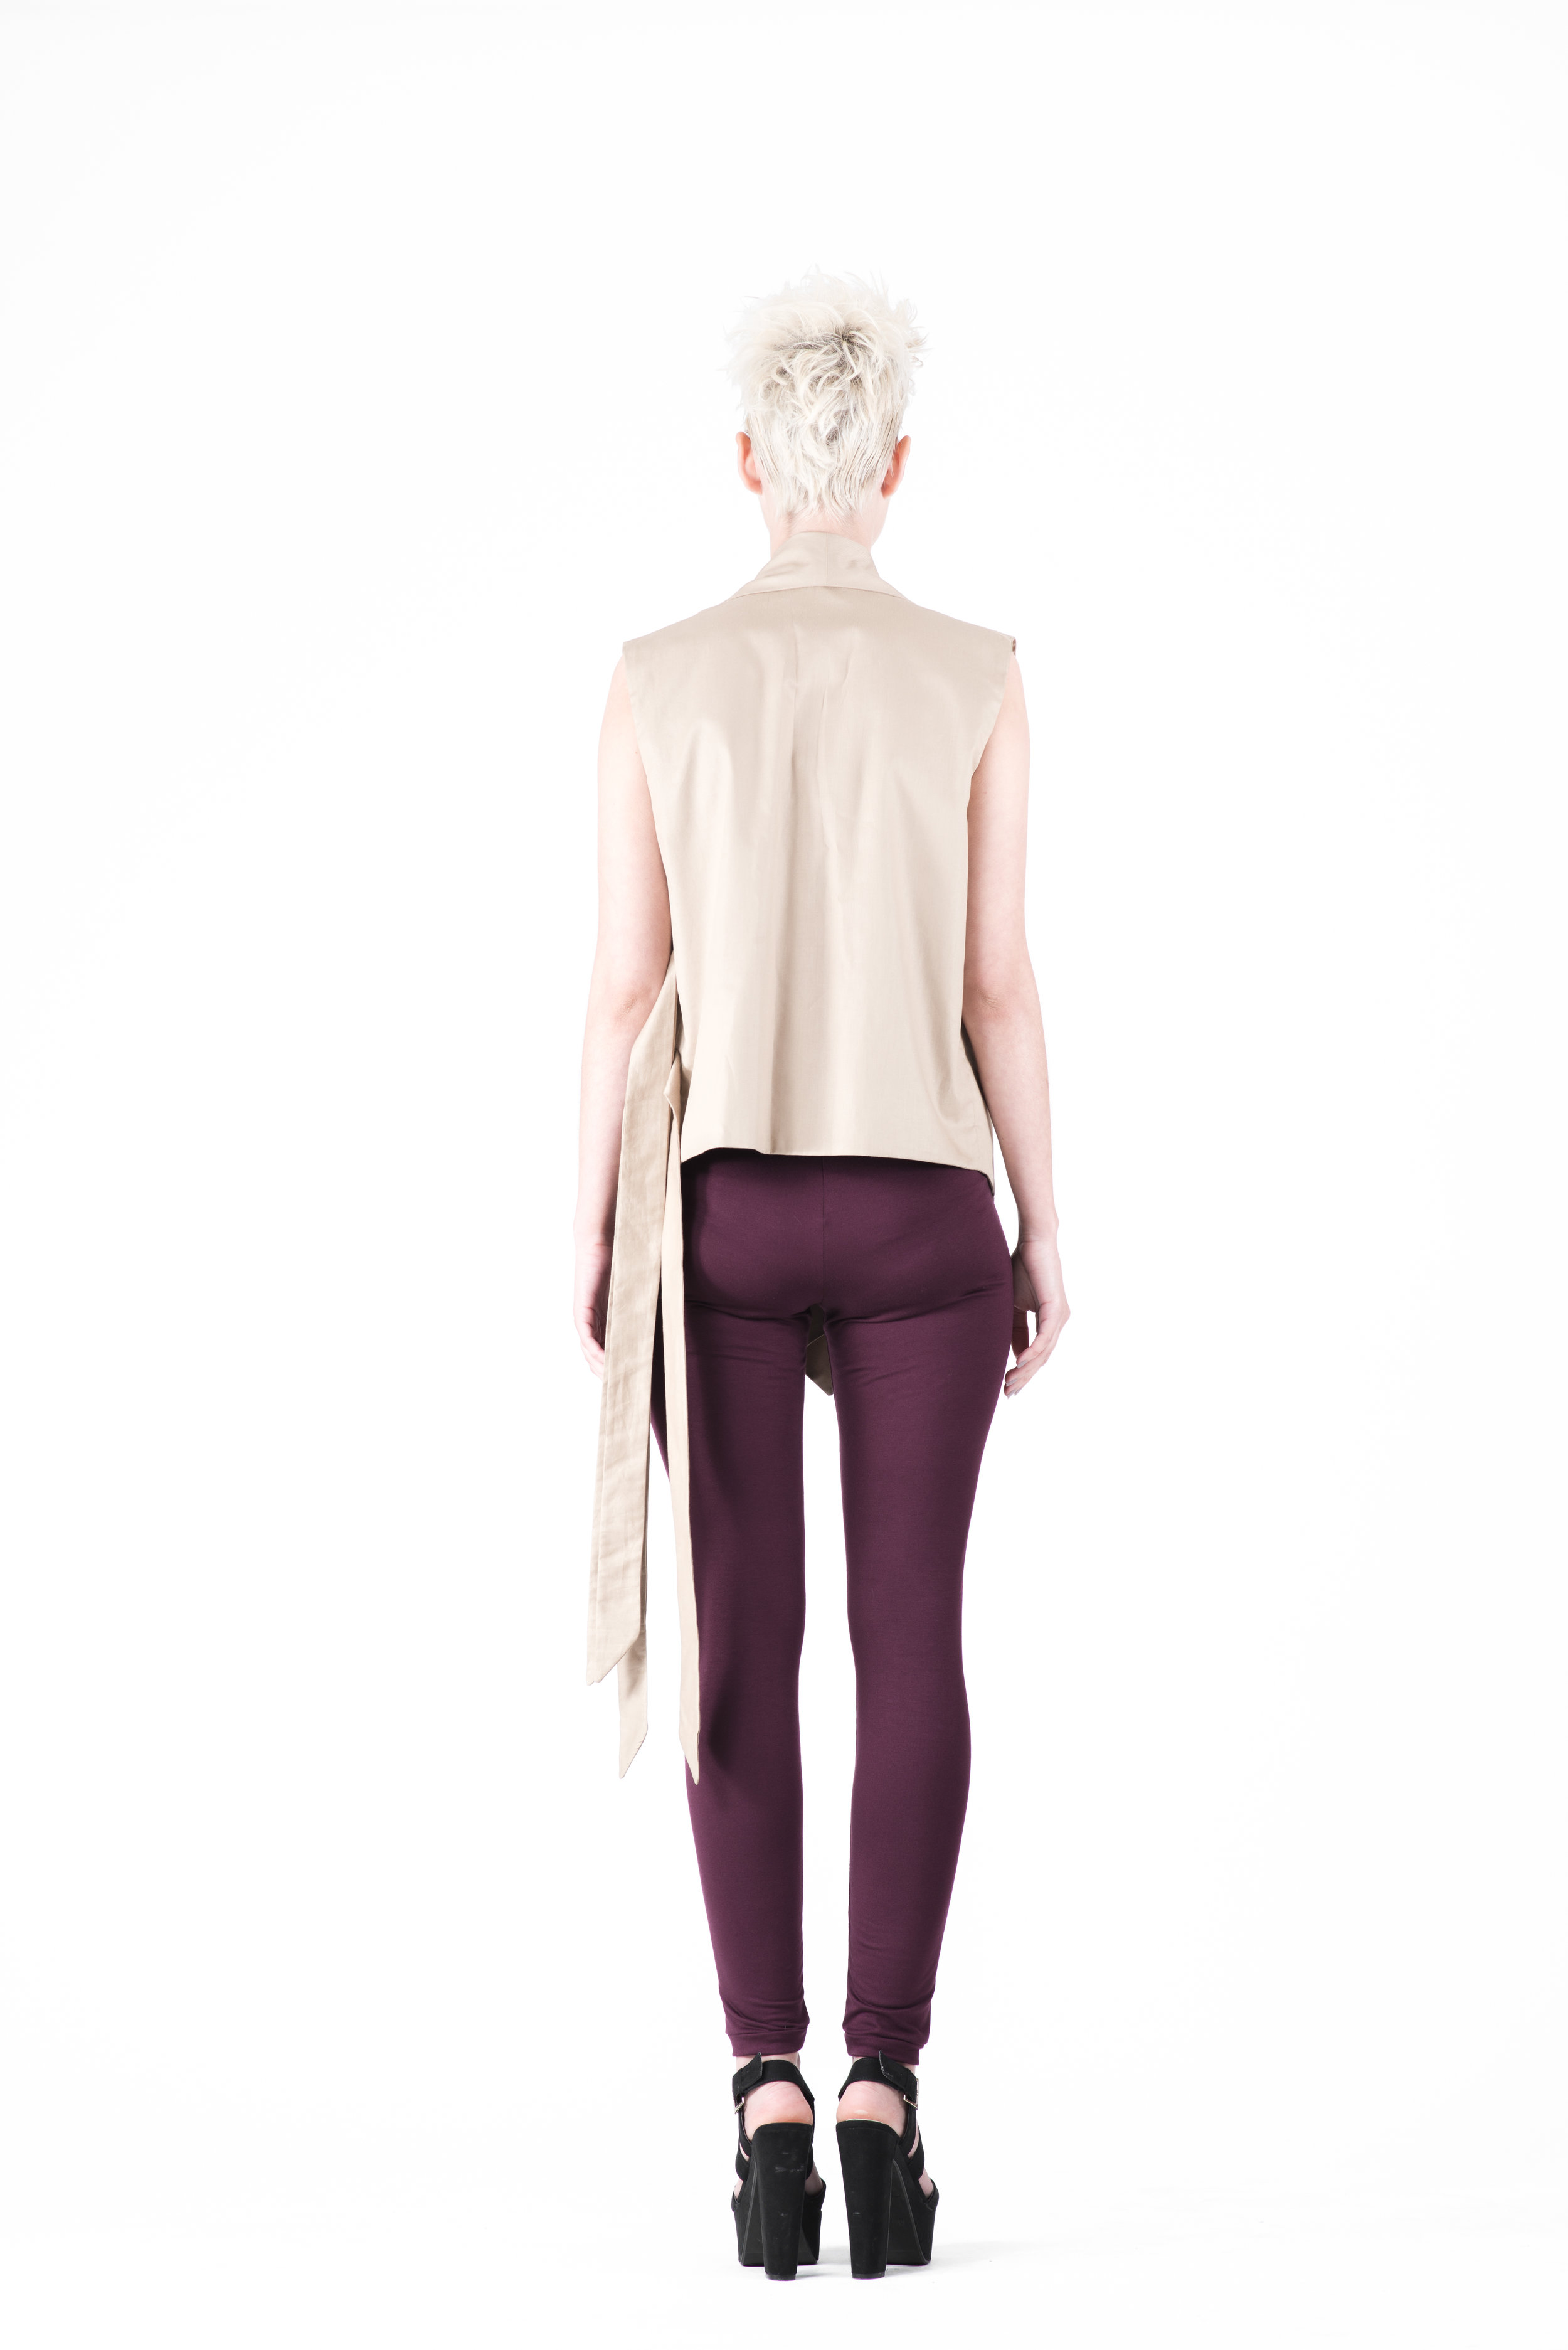 zaramia-ava-zaramiaava-leeds-fashion-designer-ethical-sustainable-tailored-minimalist-mioka-beige-top-versatile-rei-plum-legginges-drape-cowl-styling-womenswear-models-photoshoot-61